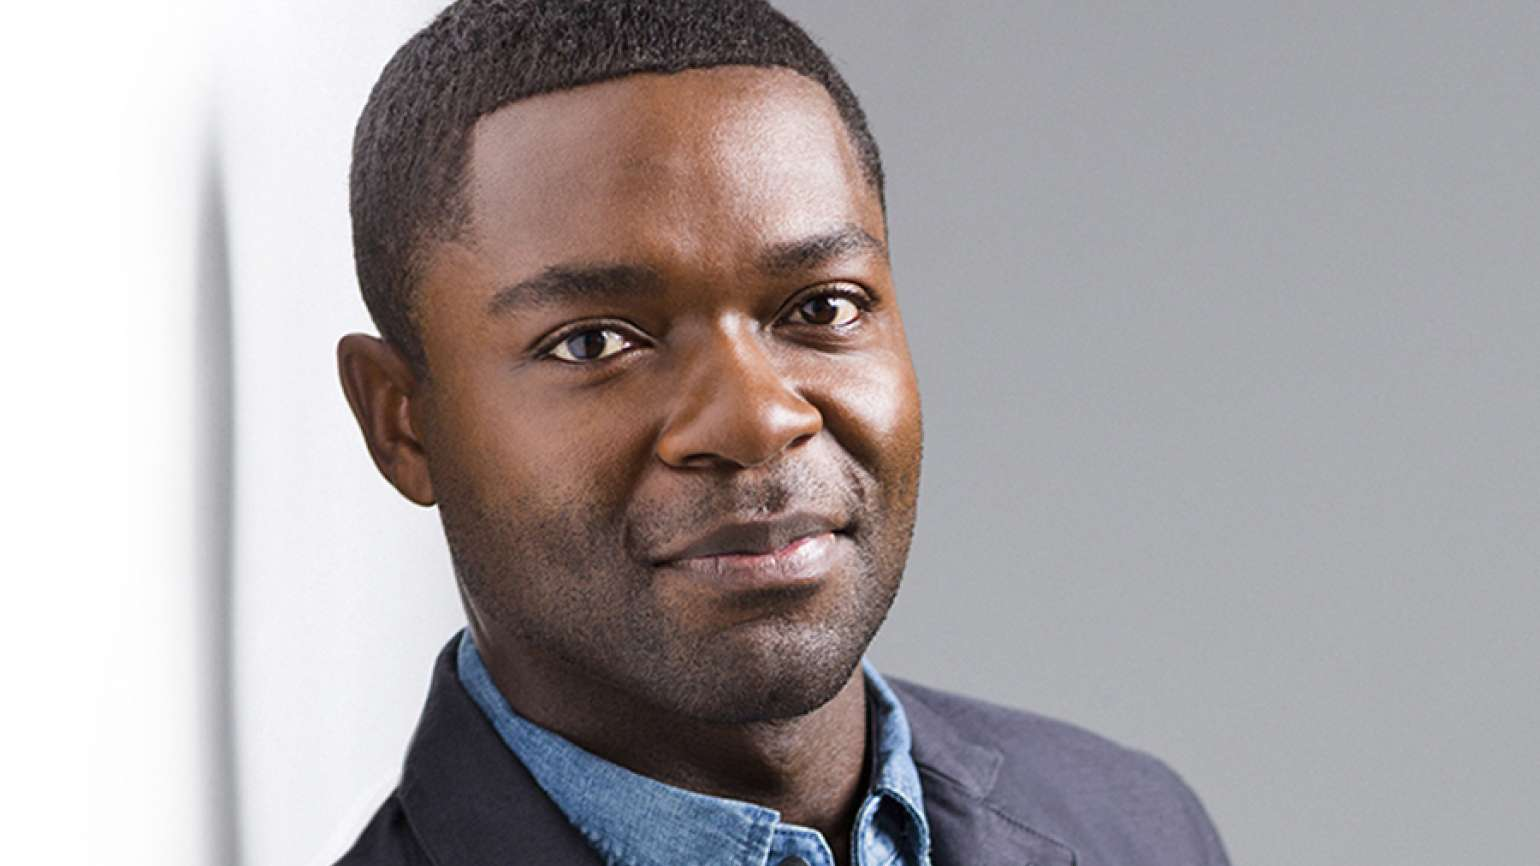 Guideposts: Actor David Oyelowo discusses the role of faith in his career